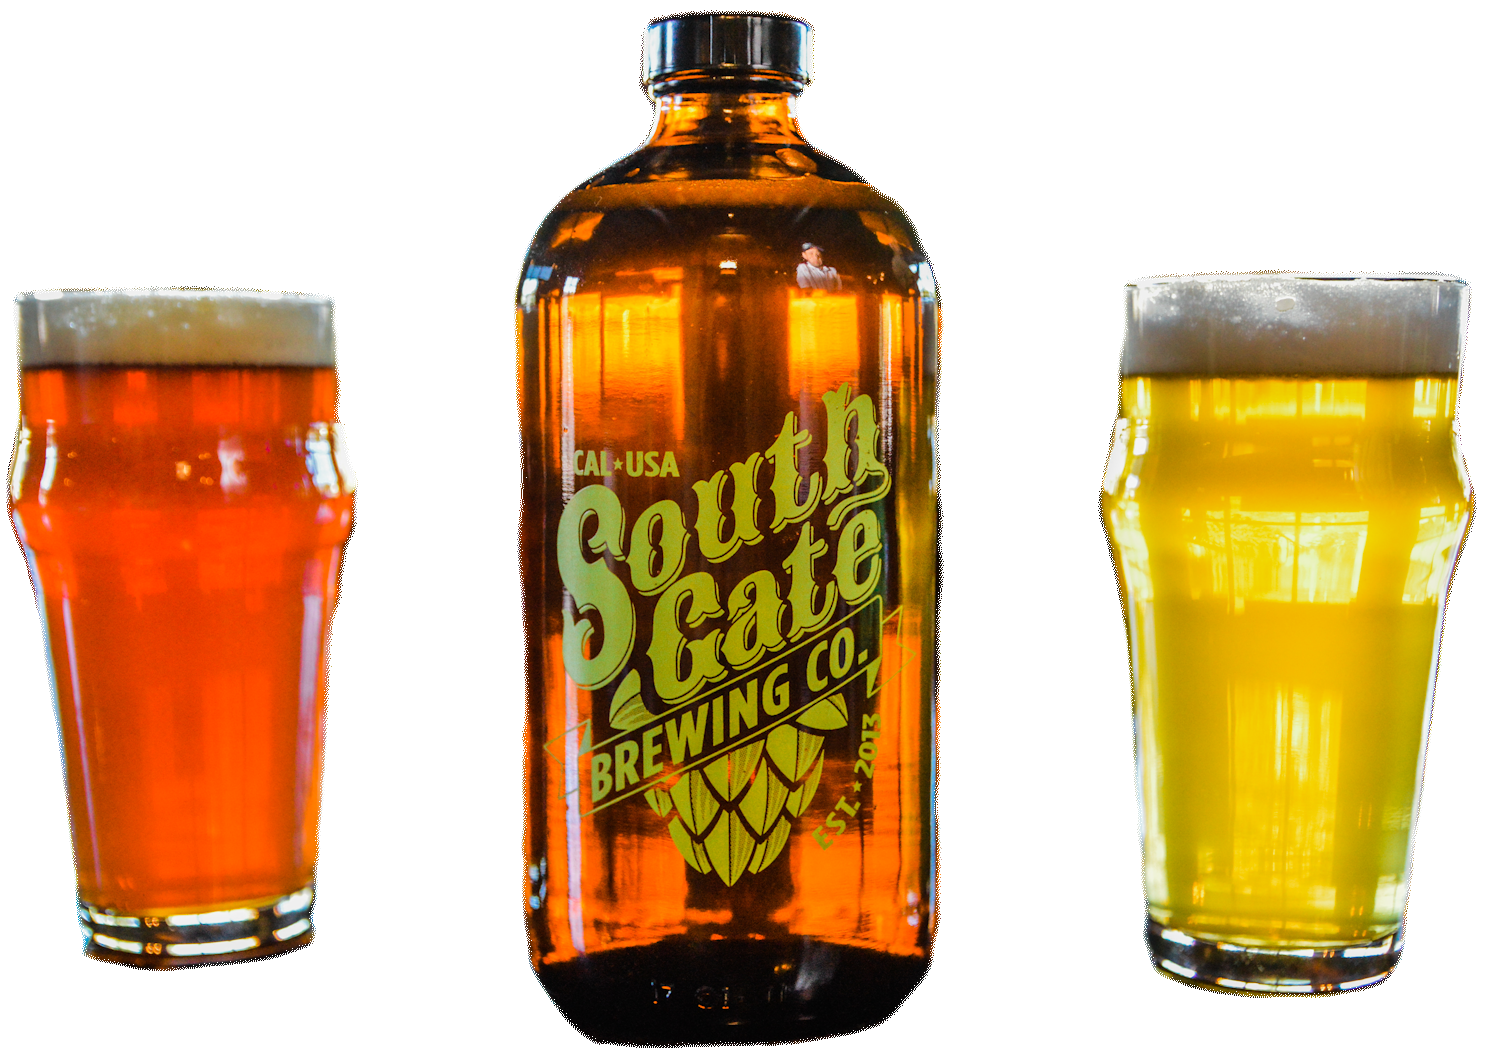 Home - South Gate Brewing Company